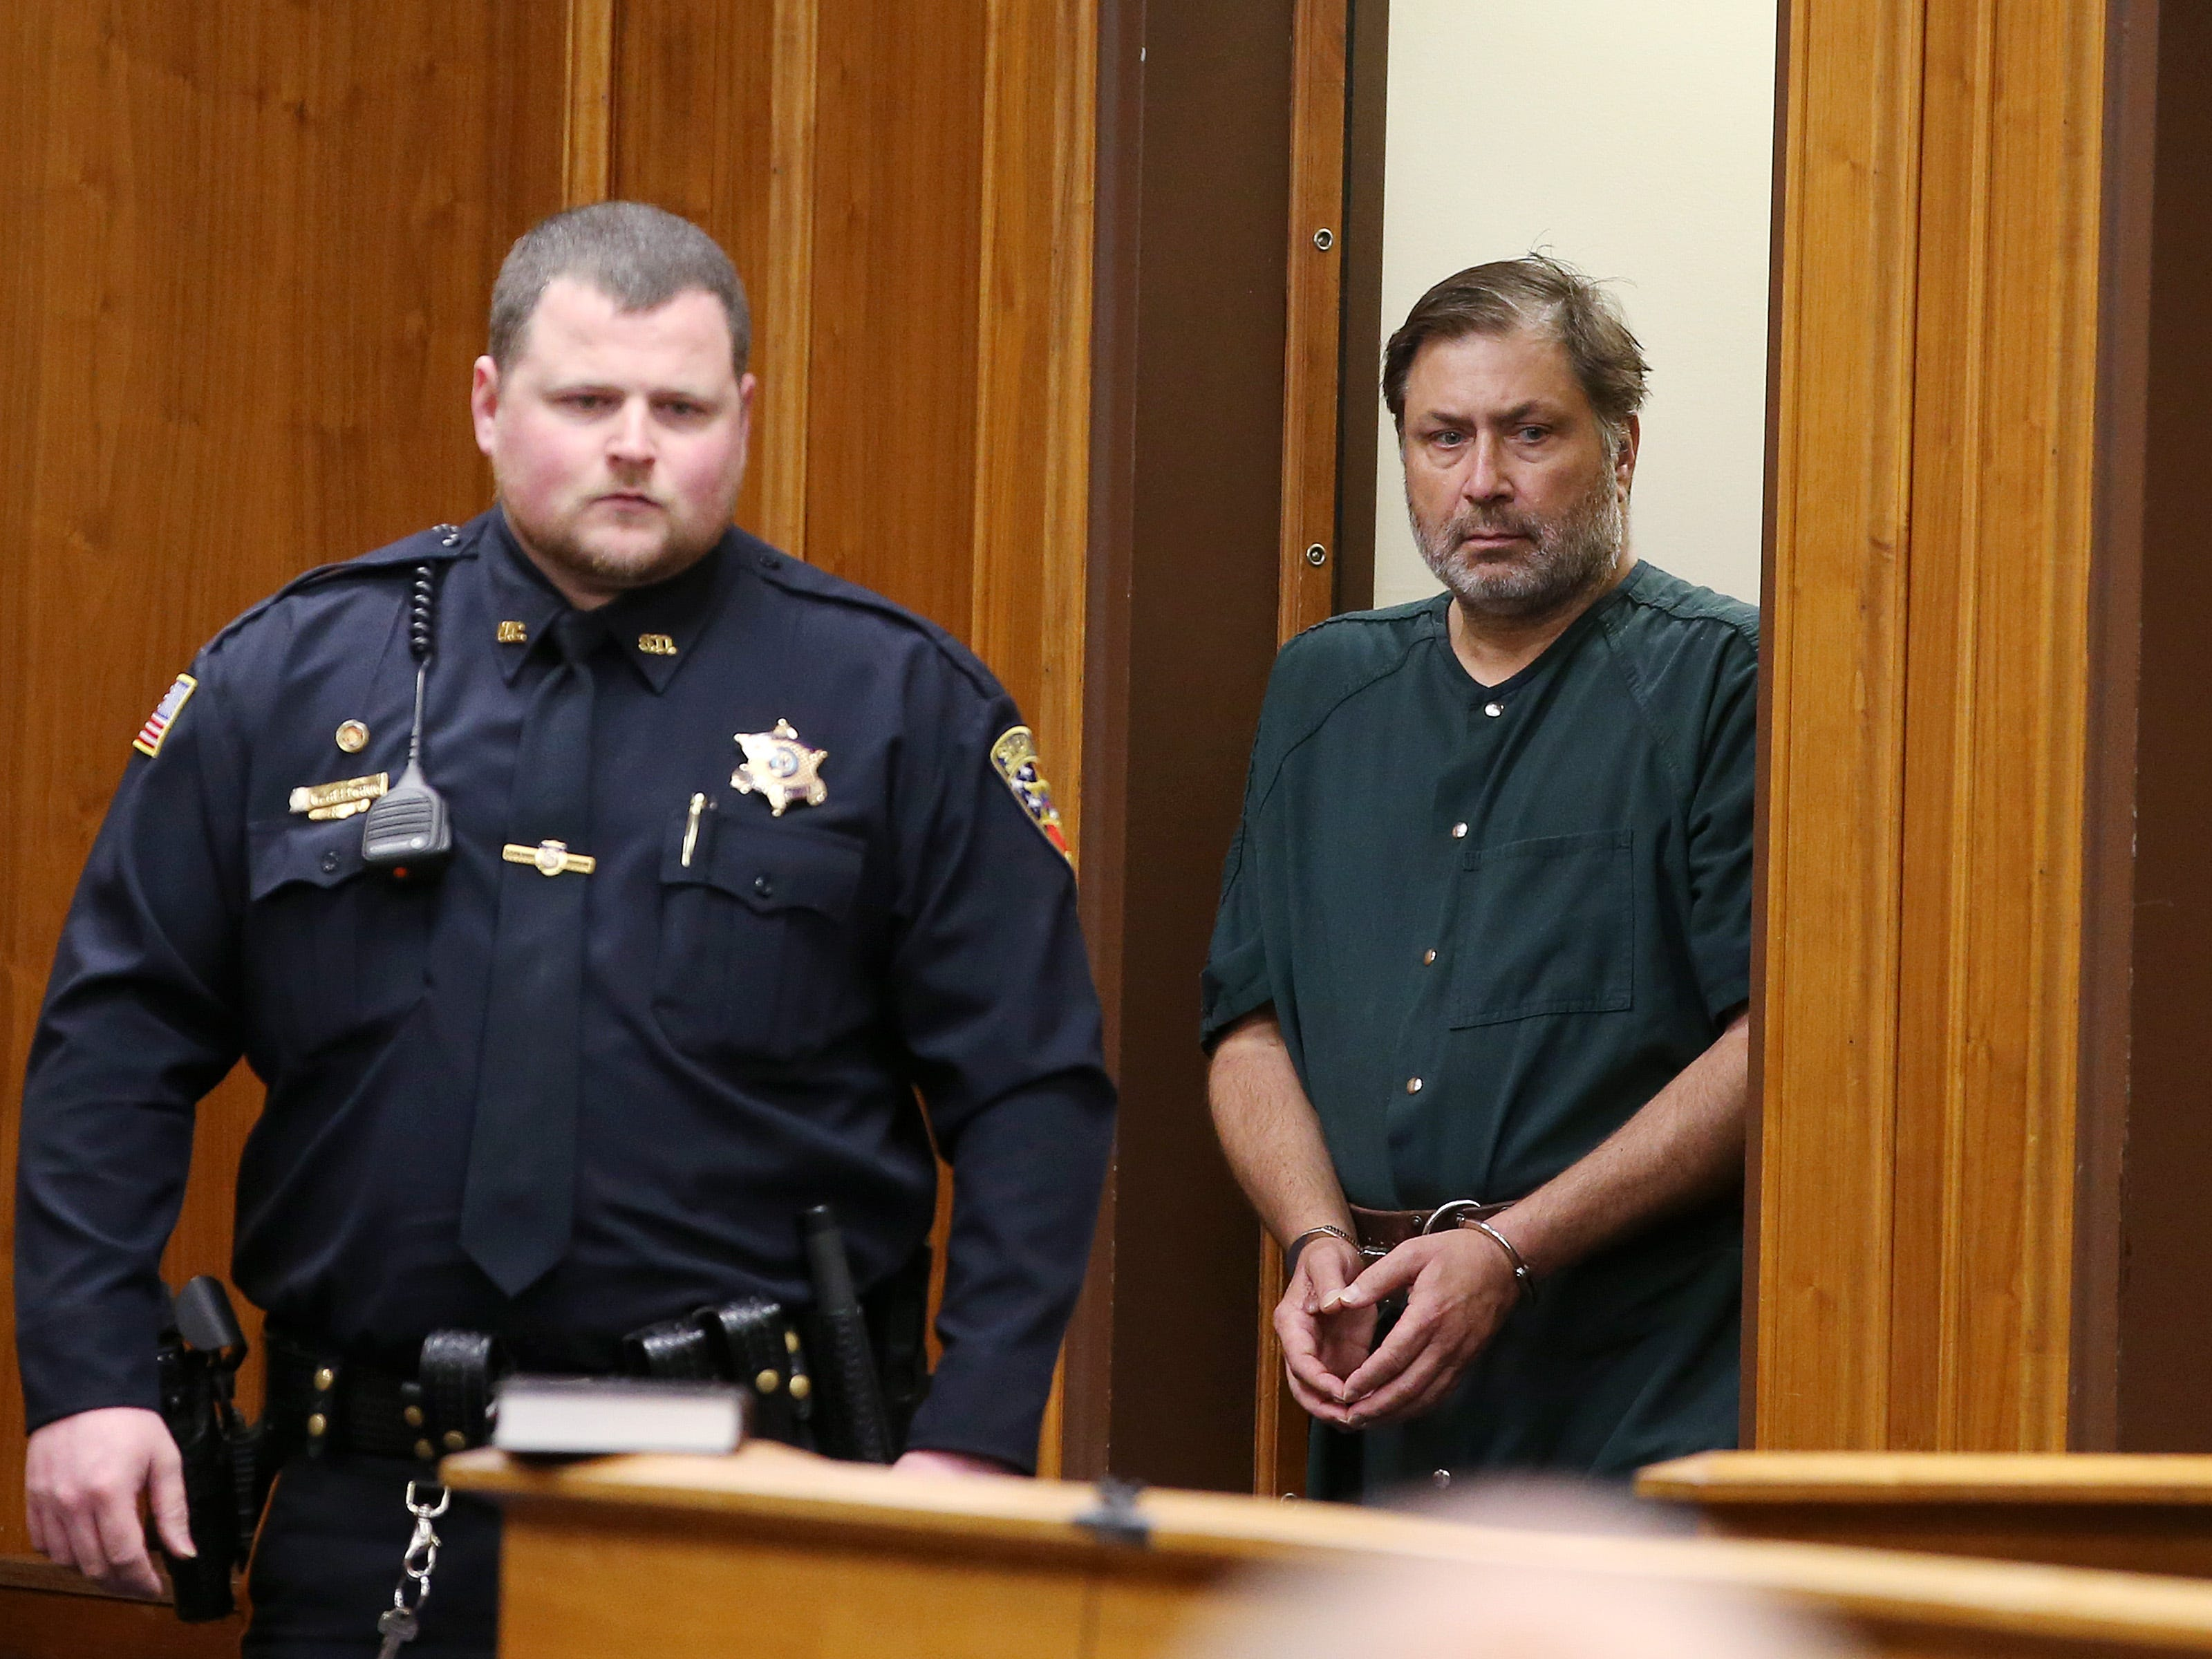 Paul Caneiro, who is charged with the murder of his brother, his brother's wife and two children and setting an arson fire to their Colts Neck home and his own home in Ocean Twp., appears for his first appearance and detention hearing before Judge James McGann at the Monmouth County Courthouse in Freehold, NJ Friday November 30, 2018.